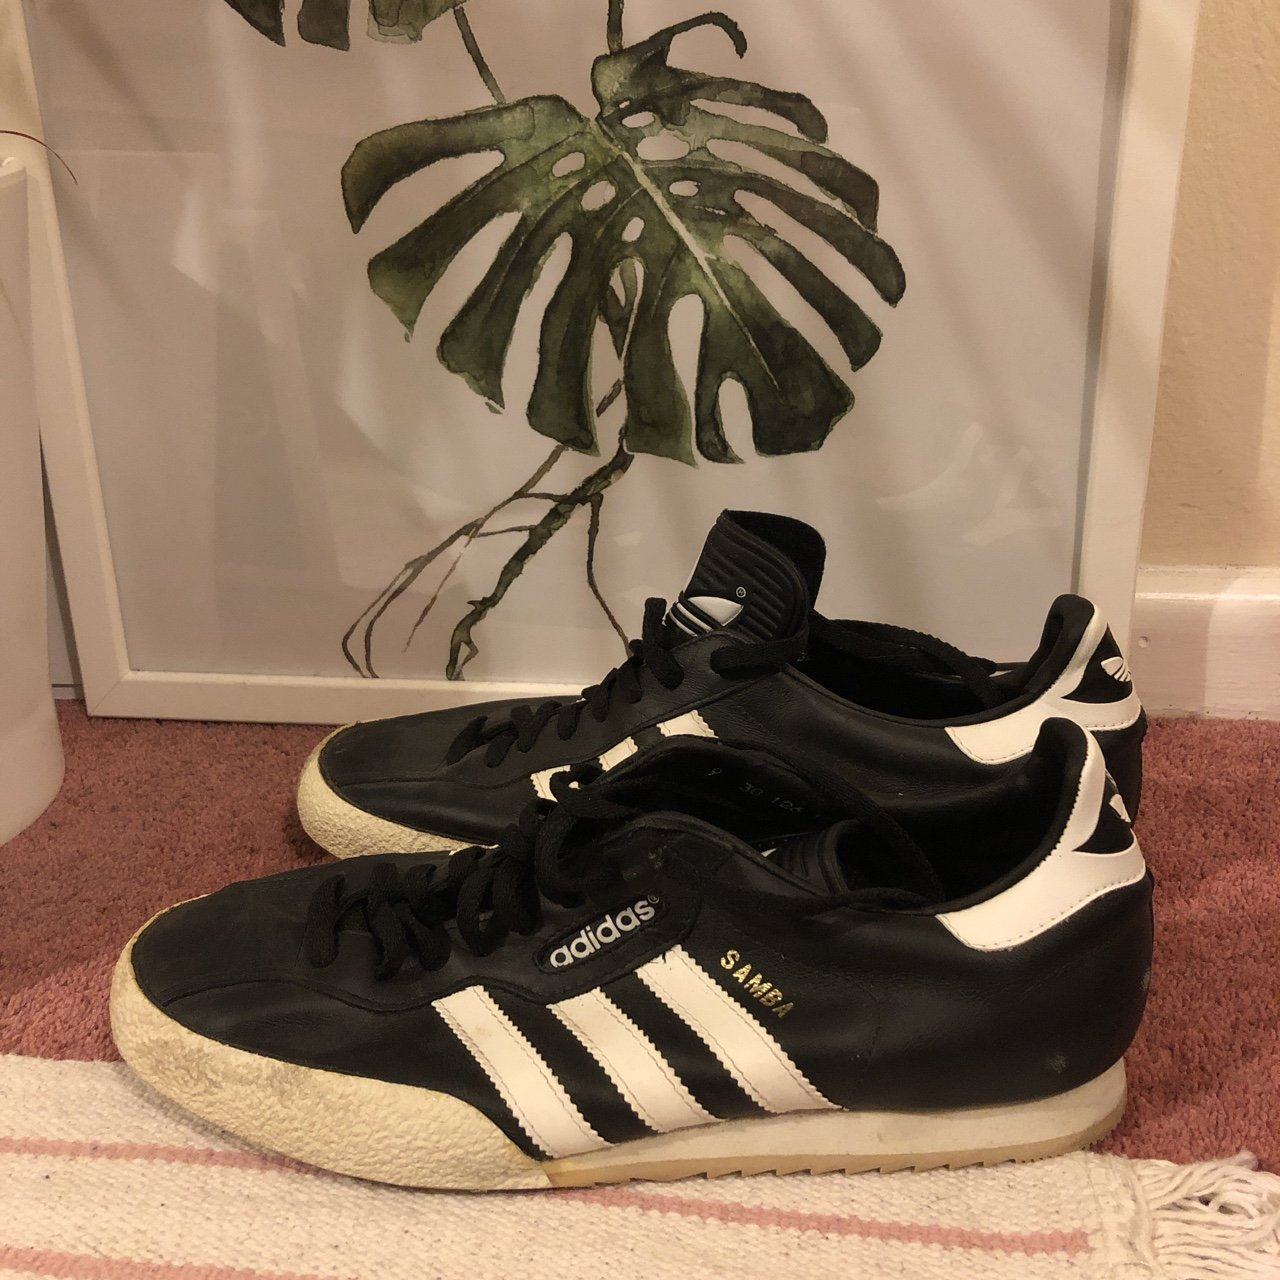 Adidas Samba trainers in size 9. Barely worn so in great to - Depop 964f83449